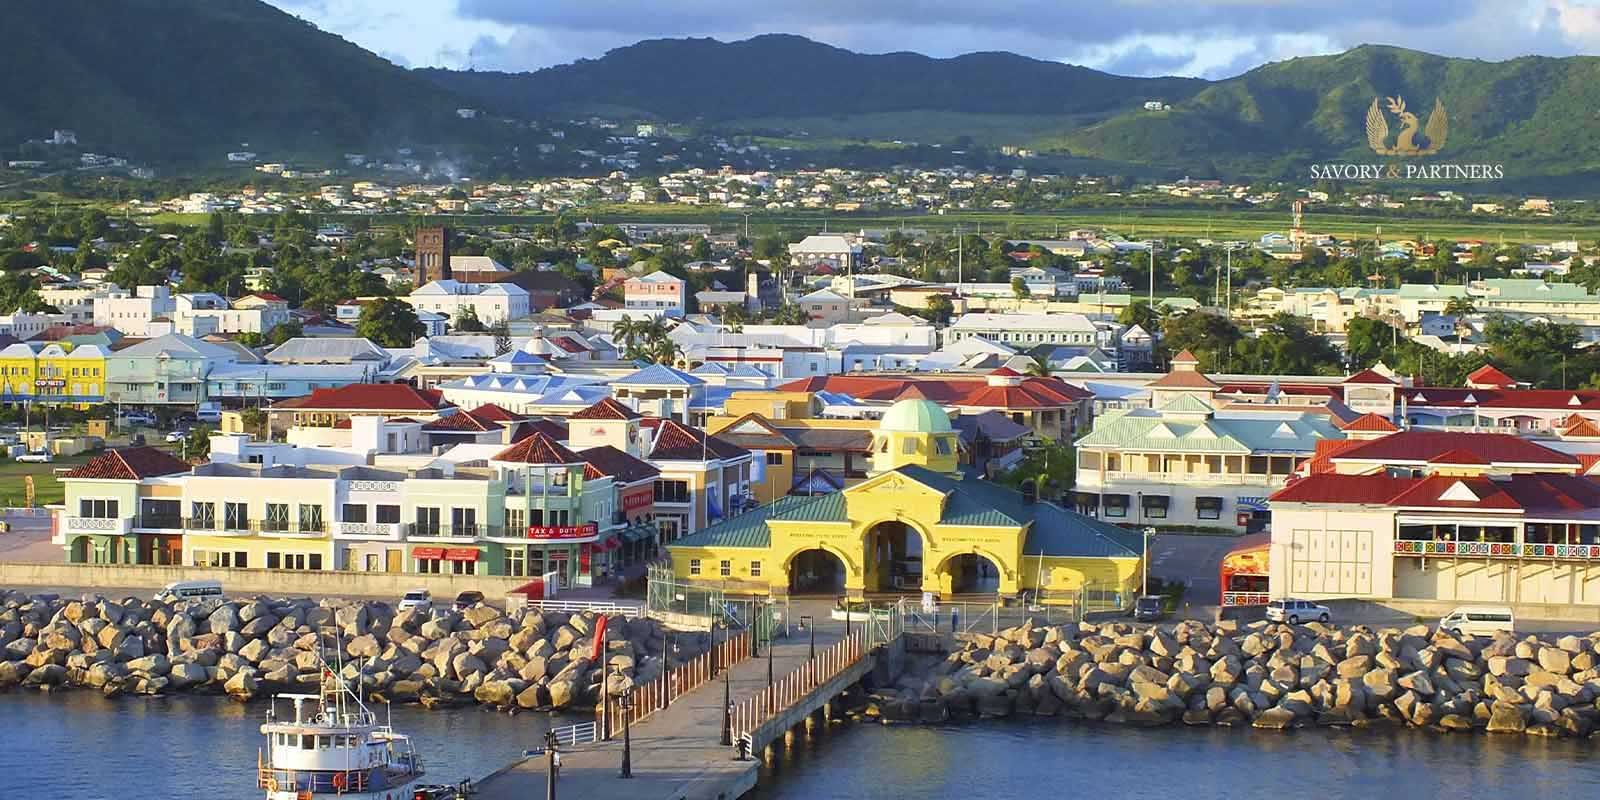 St. Kitts & Nevis announces new path to permanent residency